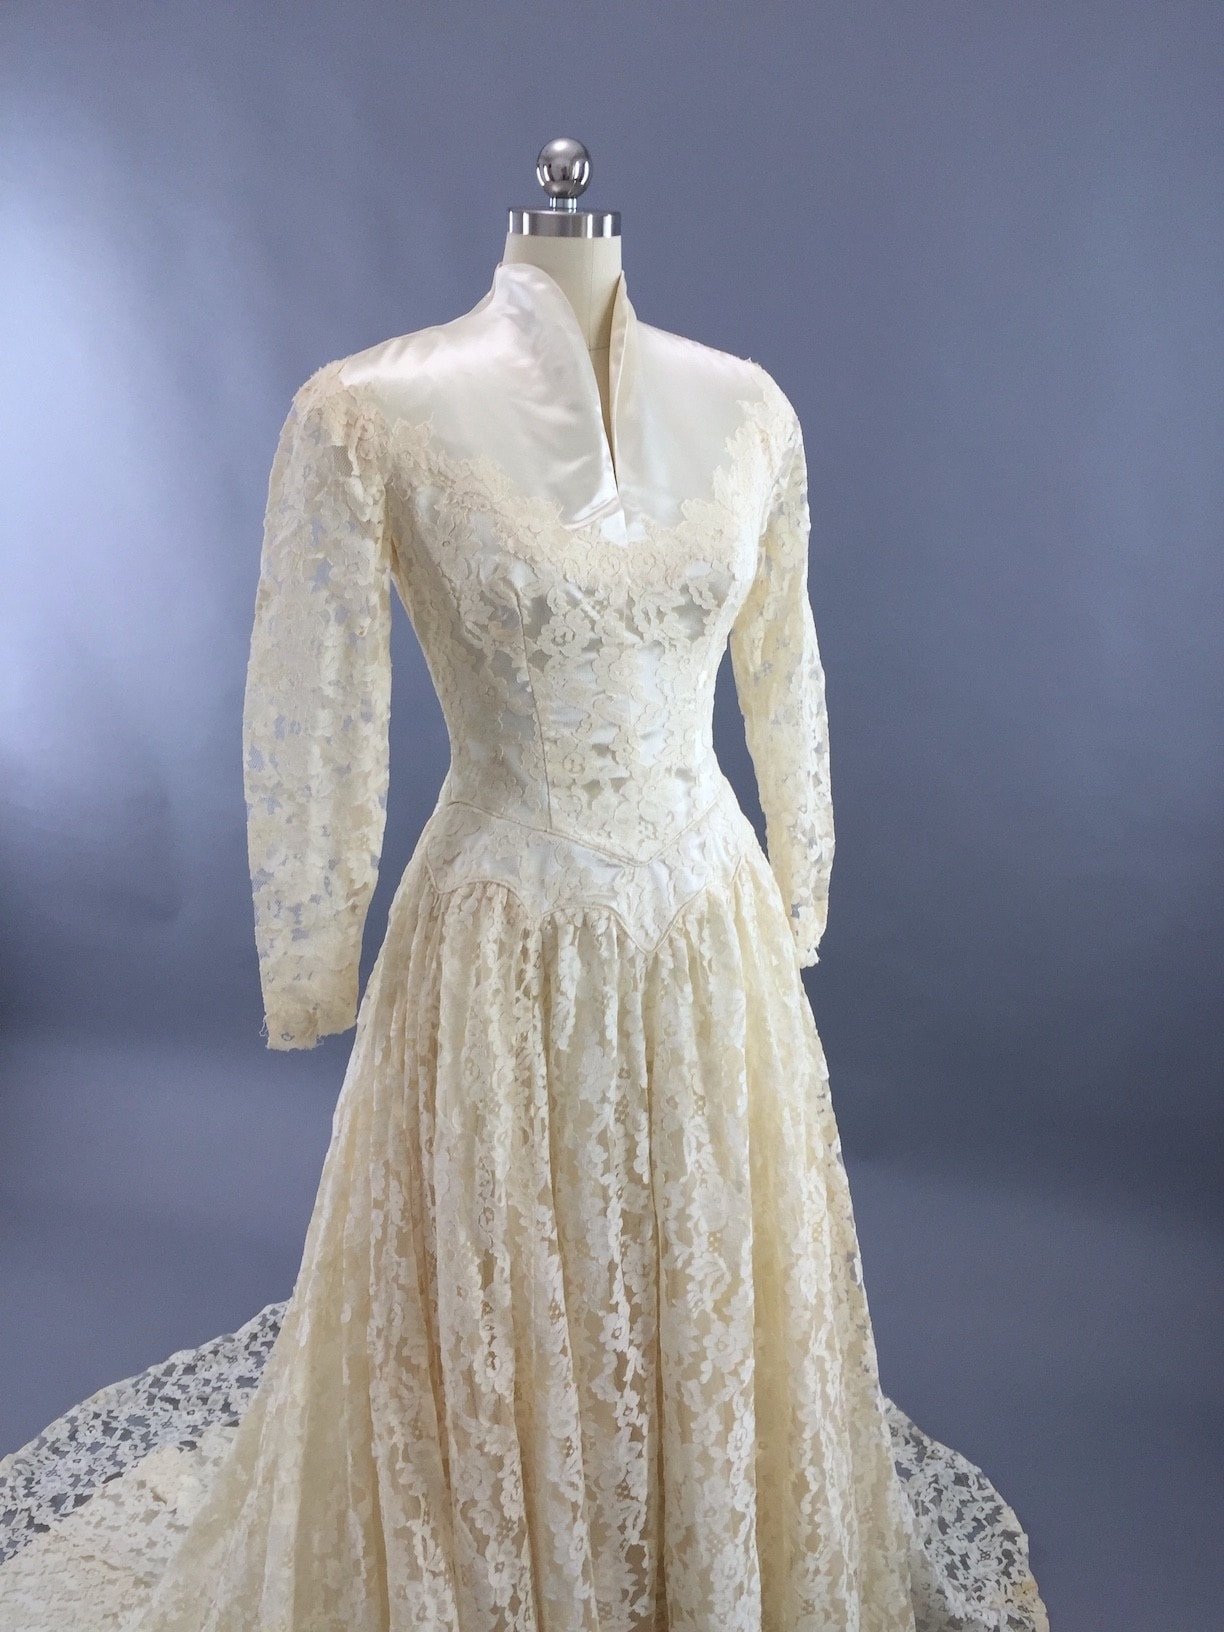 1950s Vintage Ivory Lace and Satin Wedding Dress | Chantilly lace ...